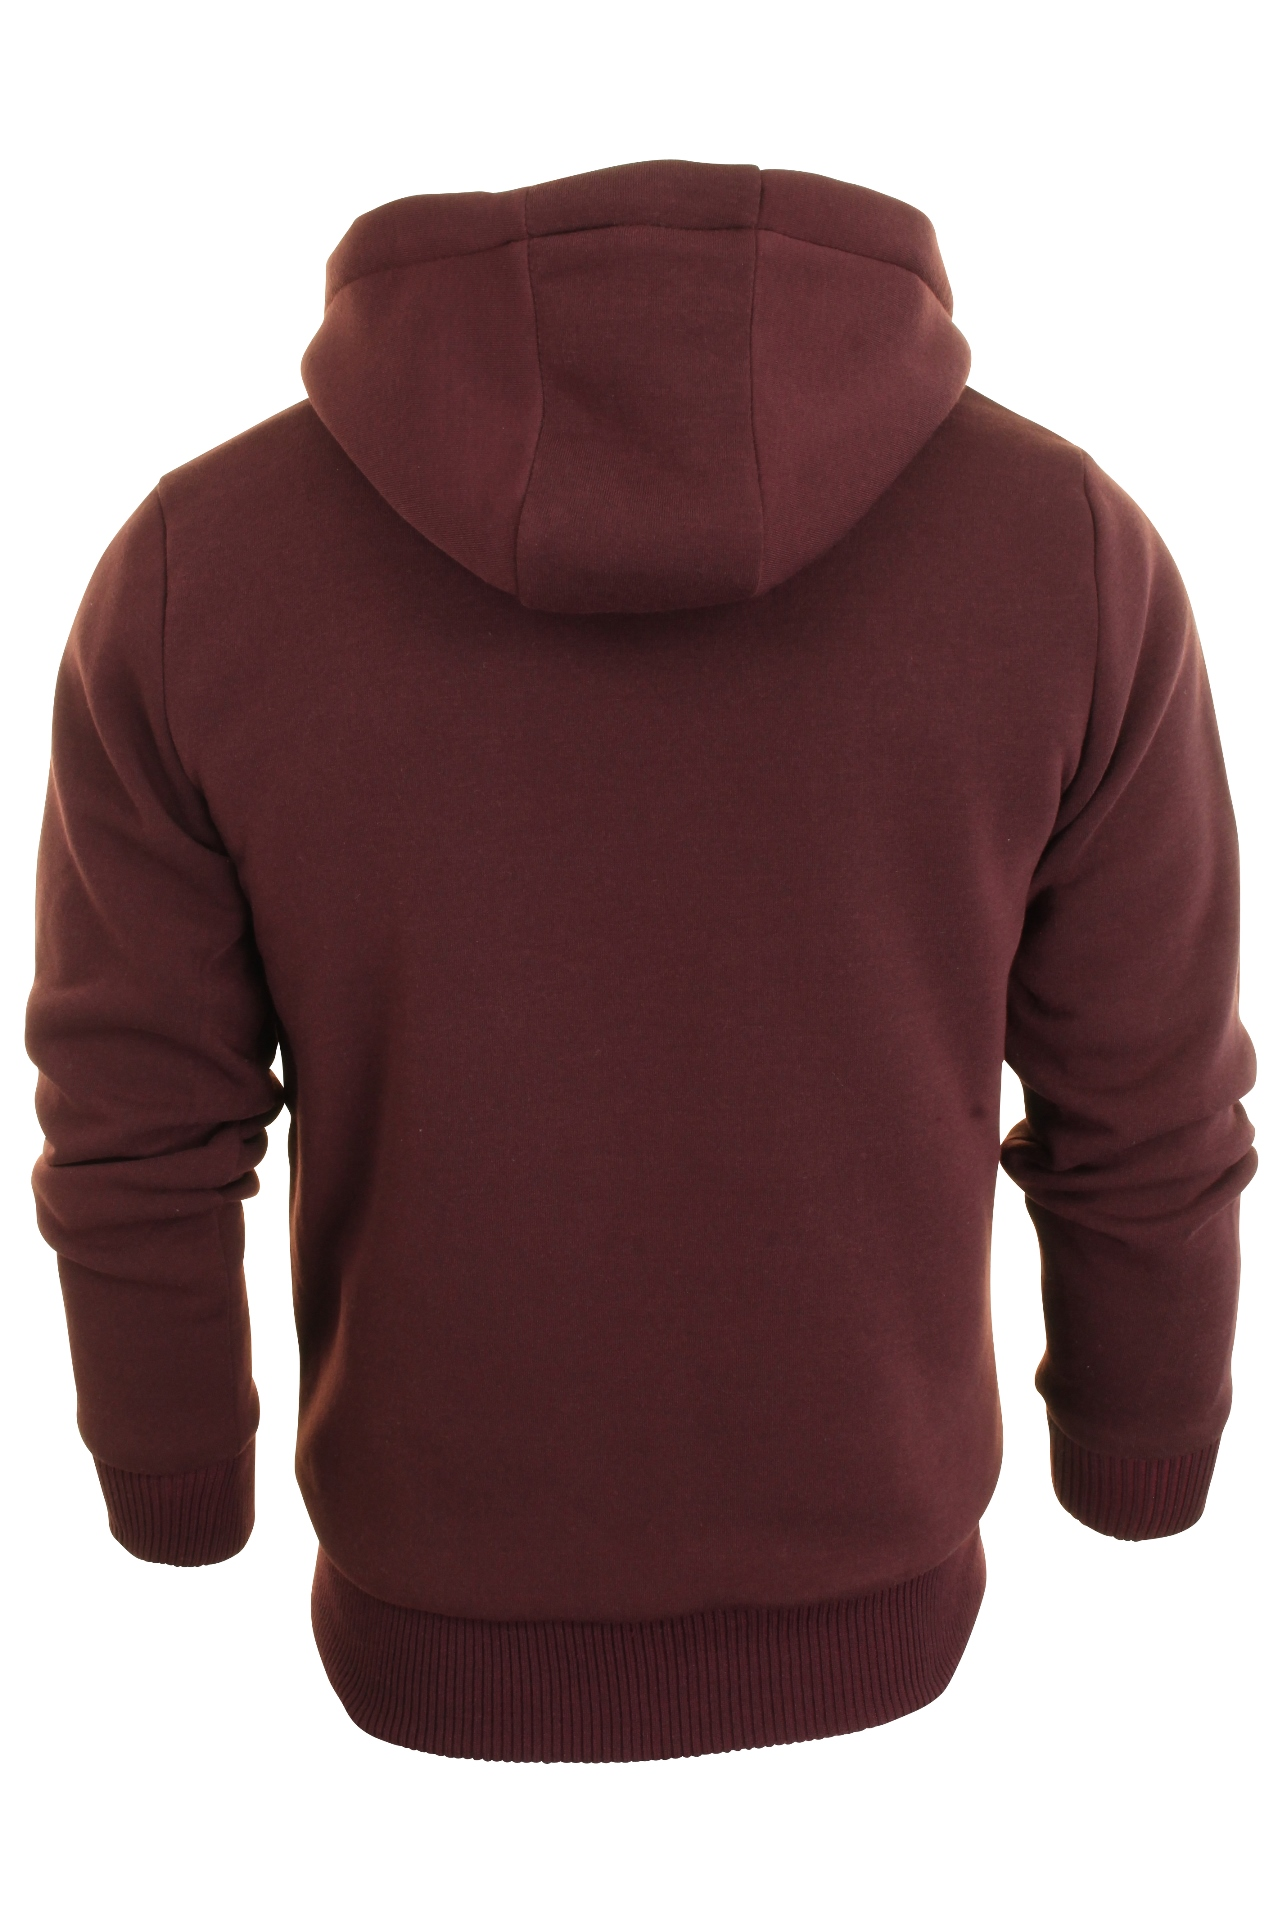 Mens-Dissident-Hoodie-039-Bolo-2-039-Fleece-Lined-Hood-amp-Body thumbnail 14